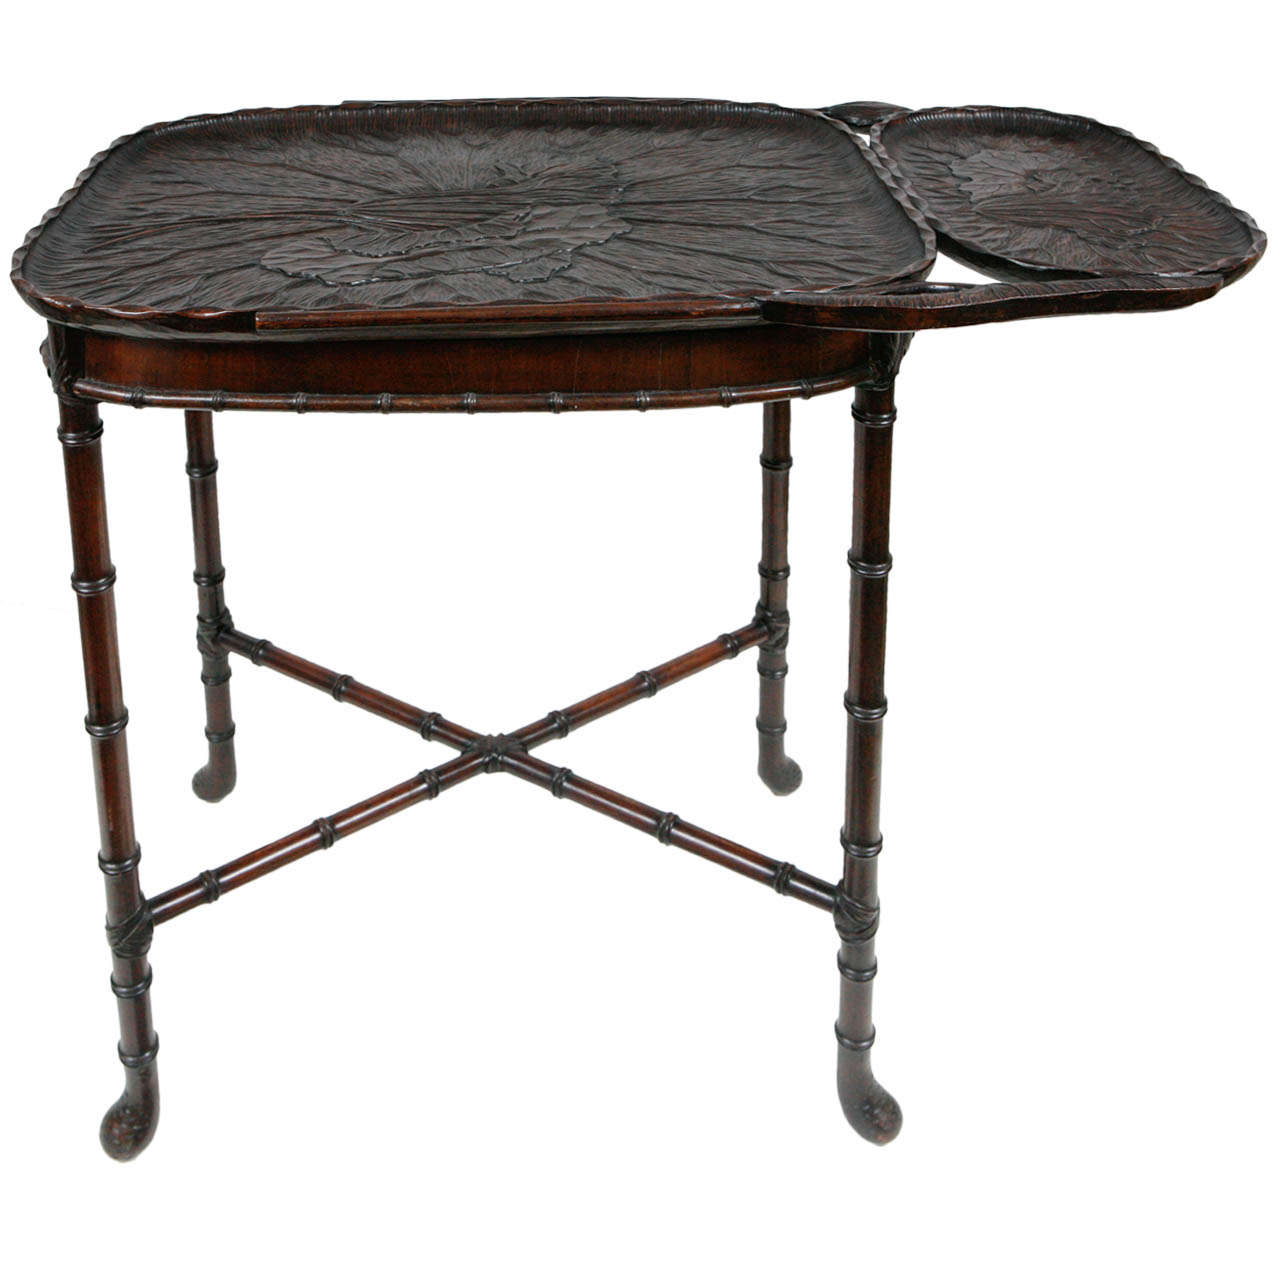 19th Century Japanese Walnut Tray on Stand